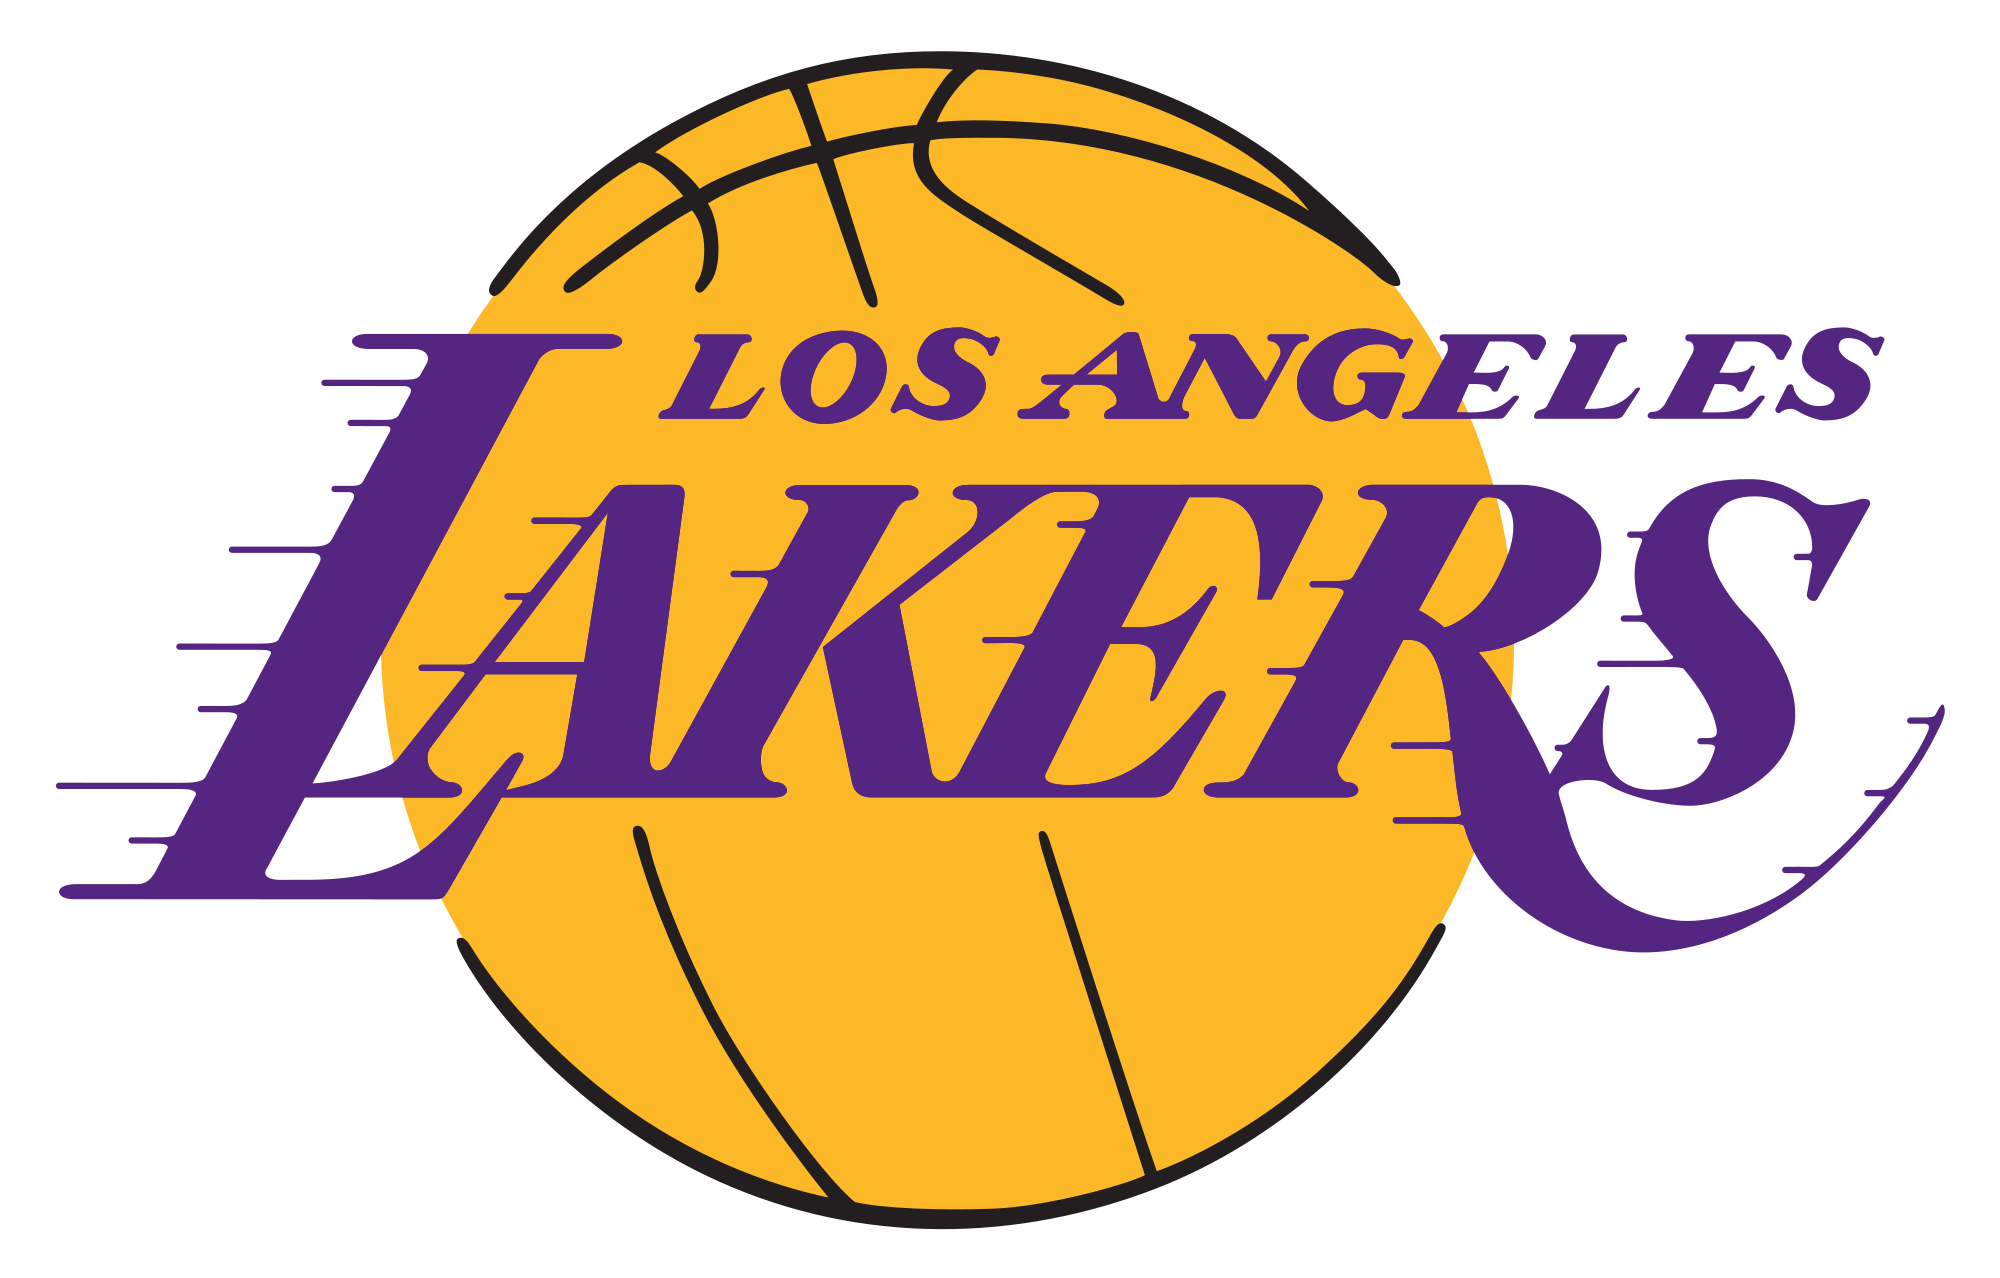 Lakers logo png. Los angeles transparent stickpng